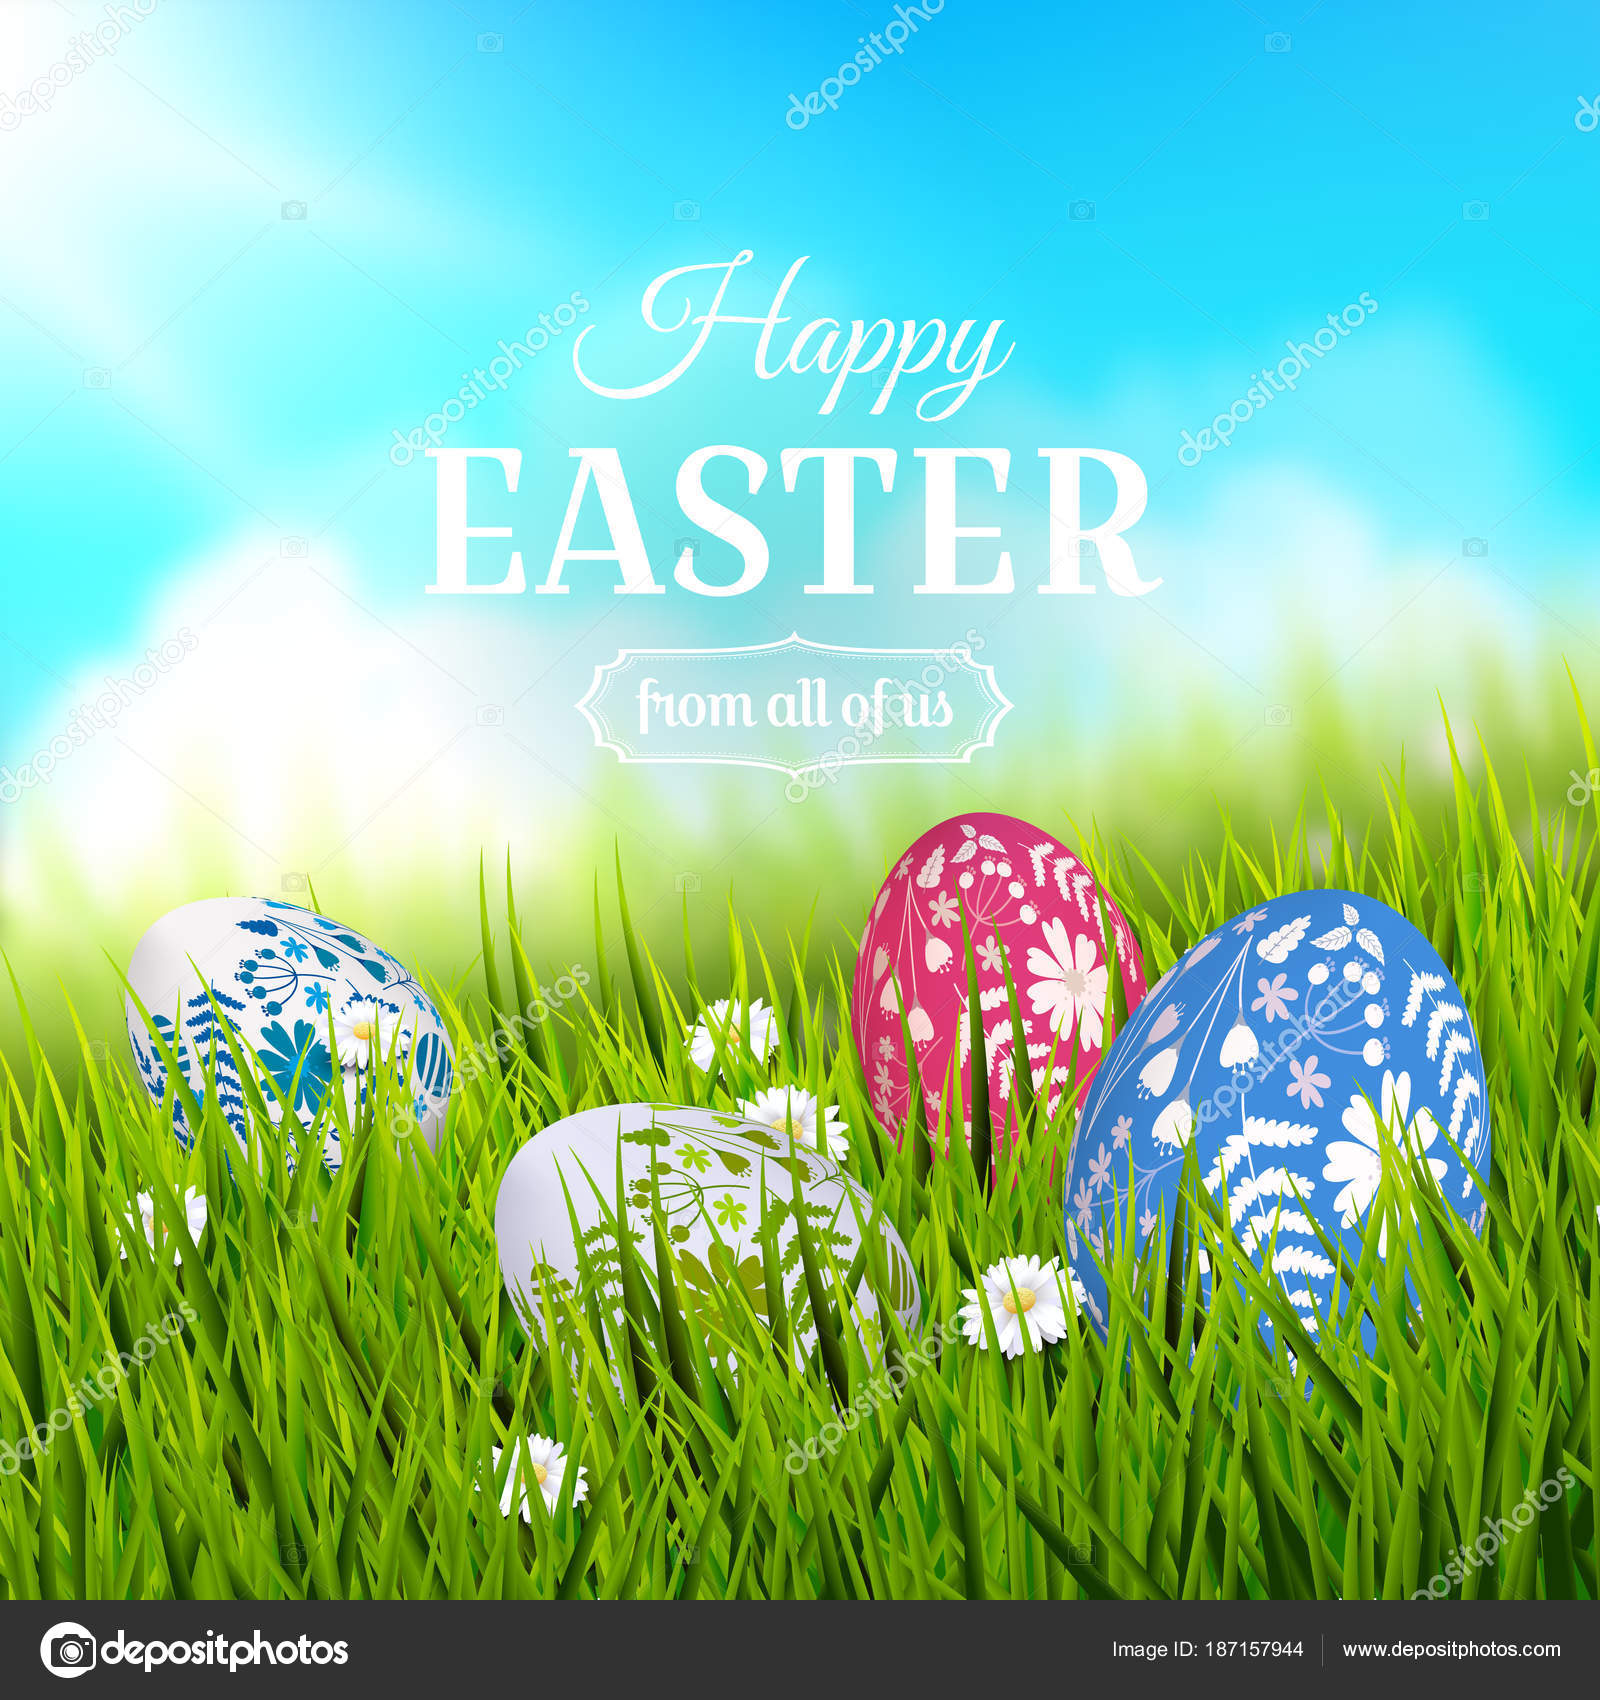 Traditional easter greeting card stock vector kaktus2536 187157944 traditional easter greeting card stock vector m4hsunfo Images